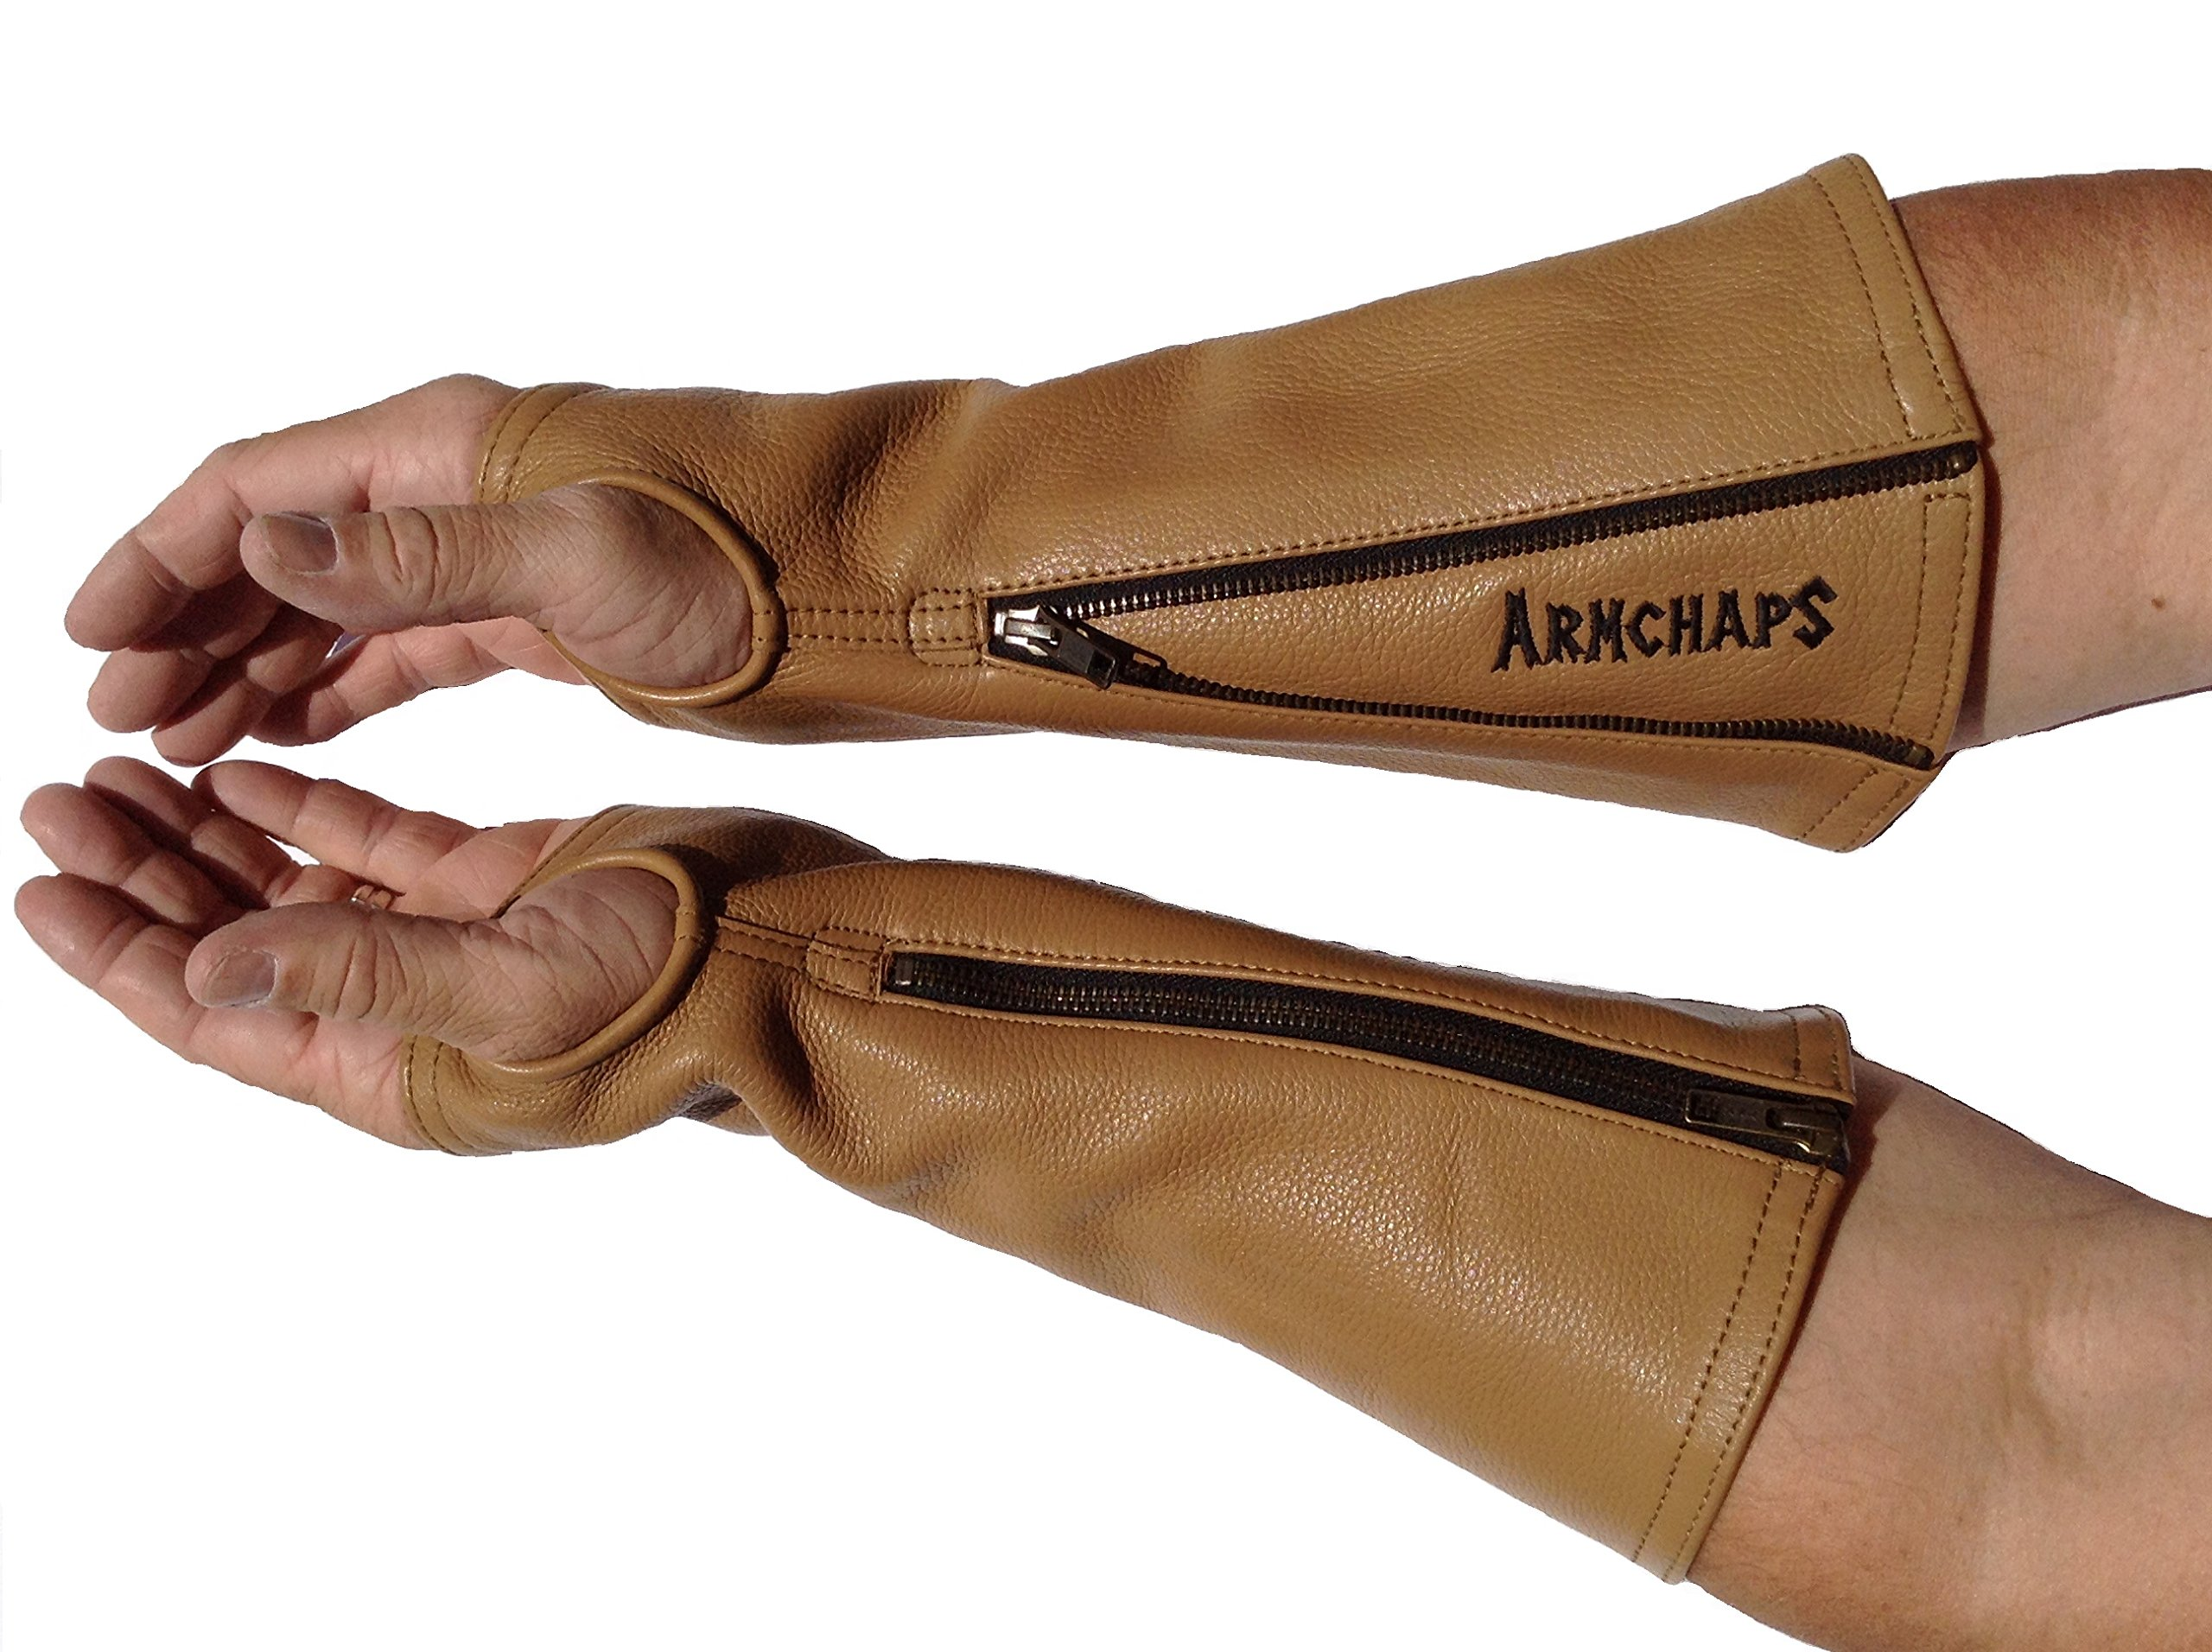 Arm Chaps Leather Protective Arm Guard Sleeves to Prevent Cuts, Scratches, Bruising & Protect Thin Skin. For Male & Female all ages. Brown (1 Pair/Large). Left & Right form-fitting. by Arm Chaps (Image #3)